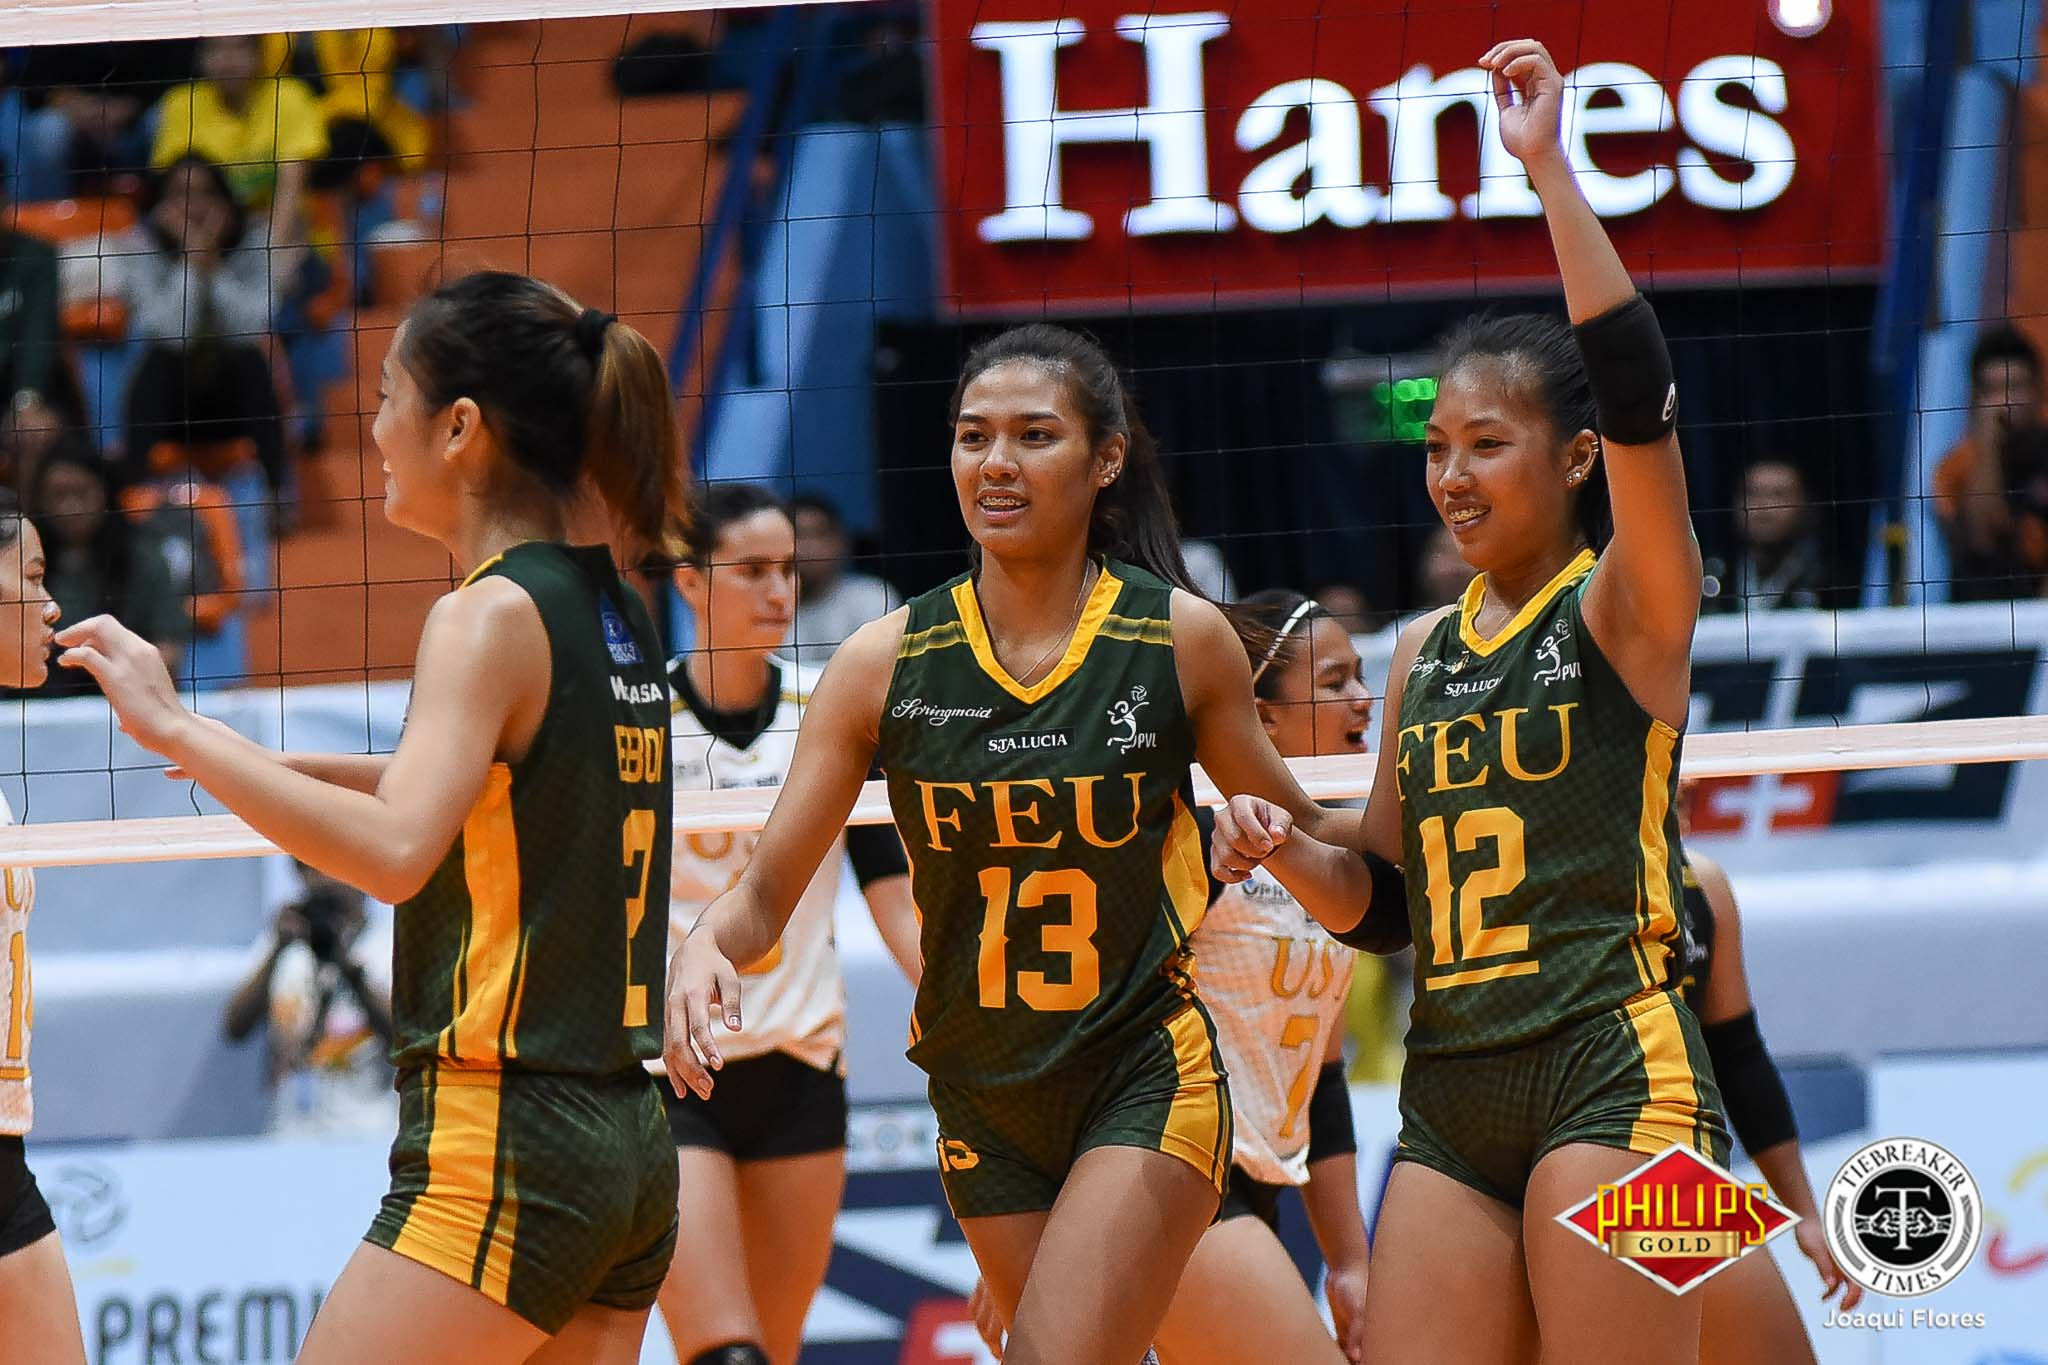 Tiebreaker Times Double loss for FEU as Celine Domingo doubtful for Game 2 FEU News PVL Volleyball  FEU Women's Volleyball Celine Domingo 2018 PVL Women's Collegiate Conference 2018 PVL Season